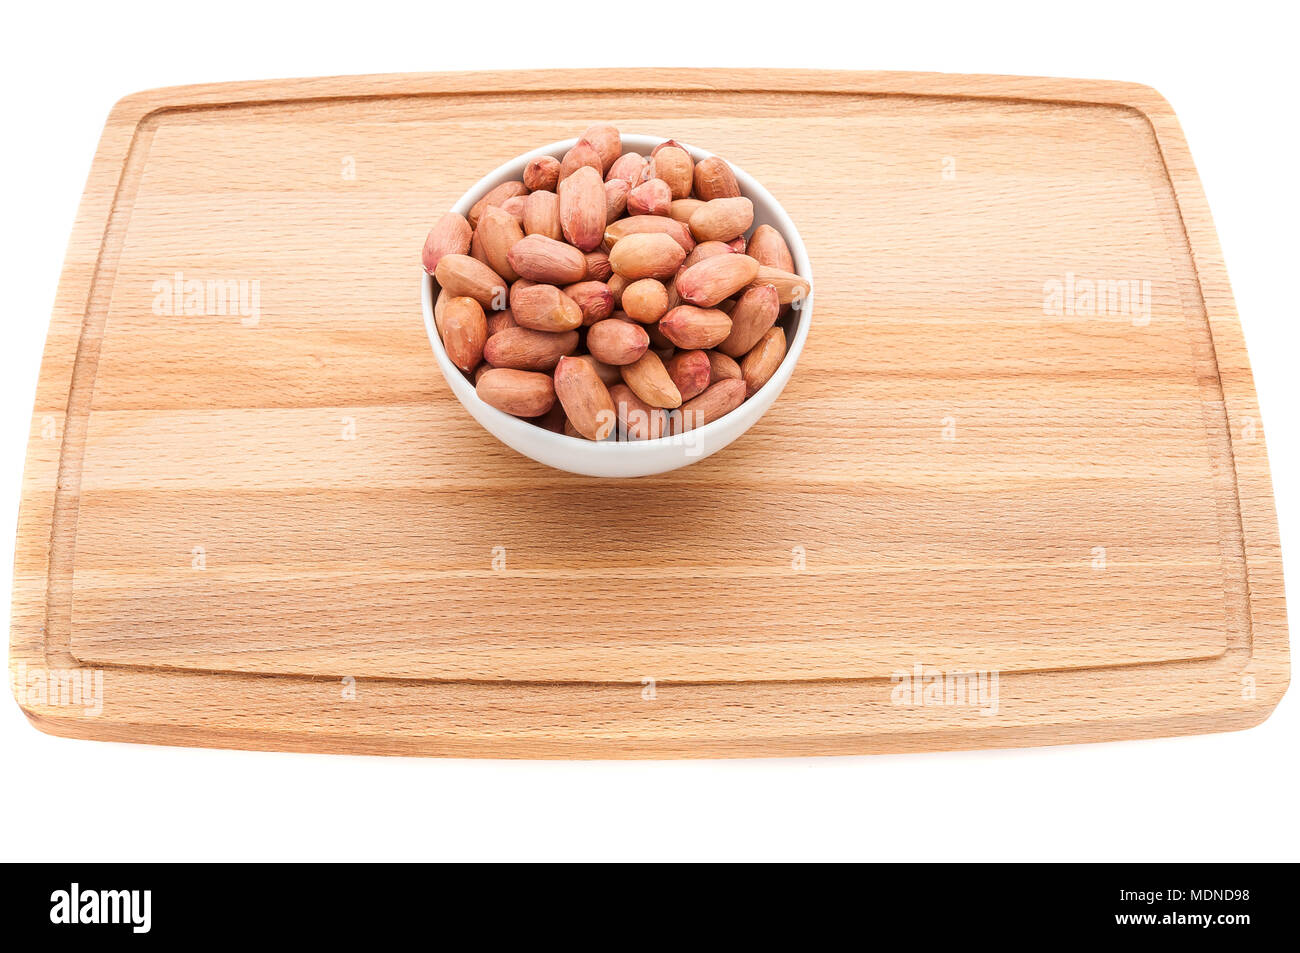 Mixed nuts in a metal brown bowl on a white wooden cutting board. - Stock Image